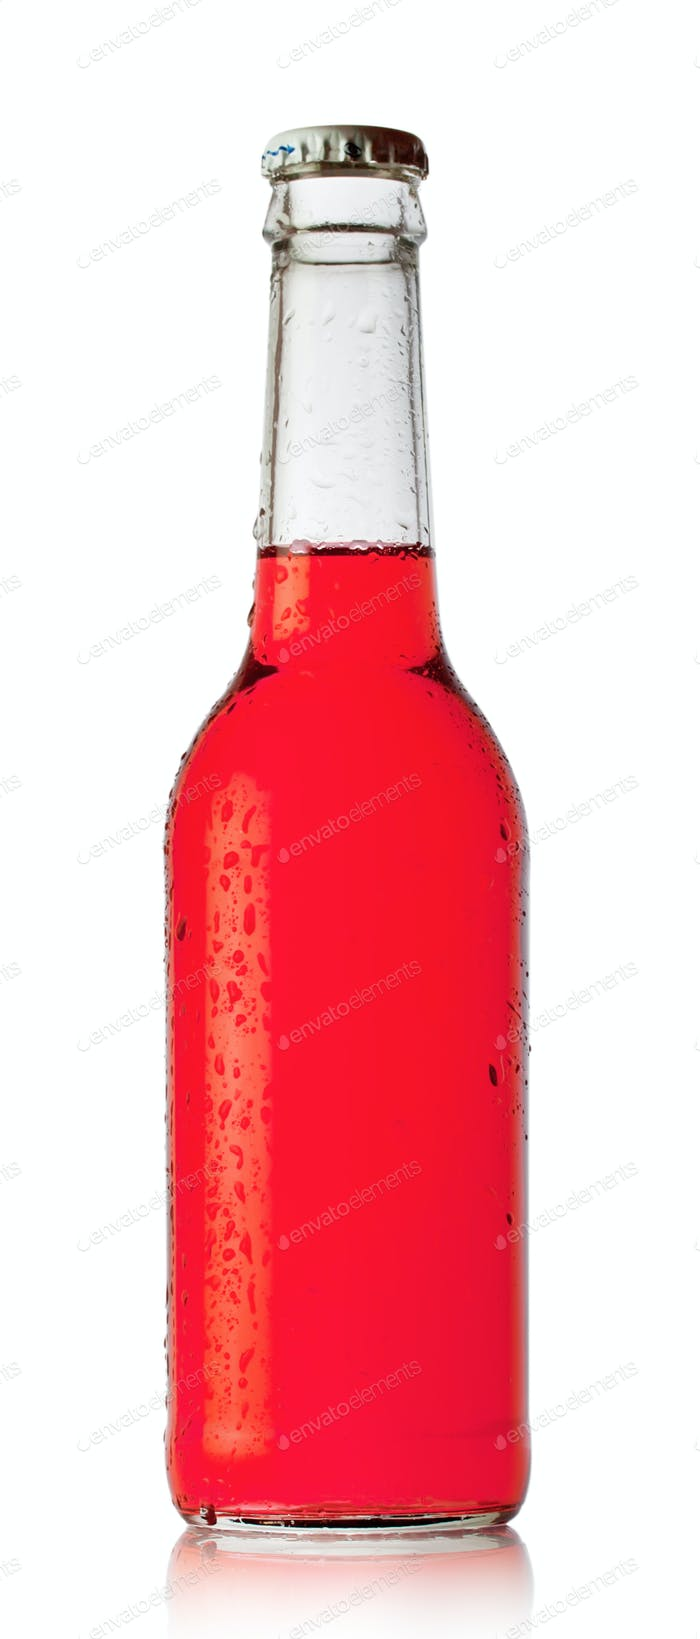 Bottle of red cocktail with drops